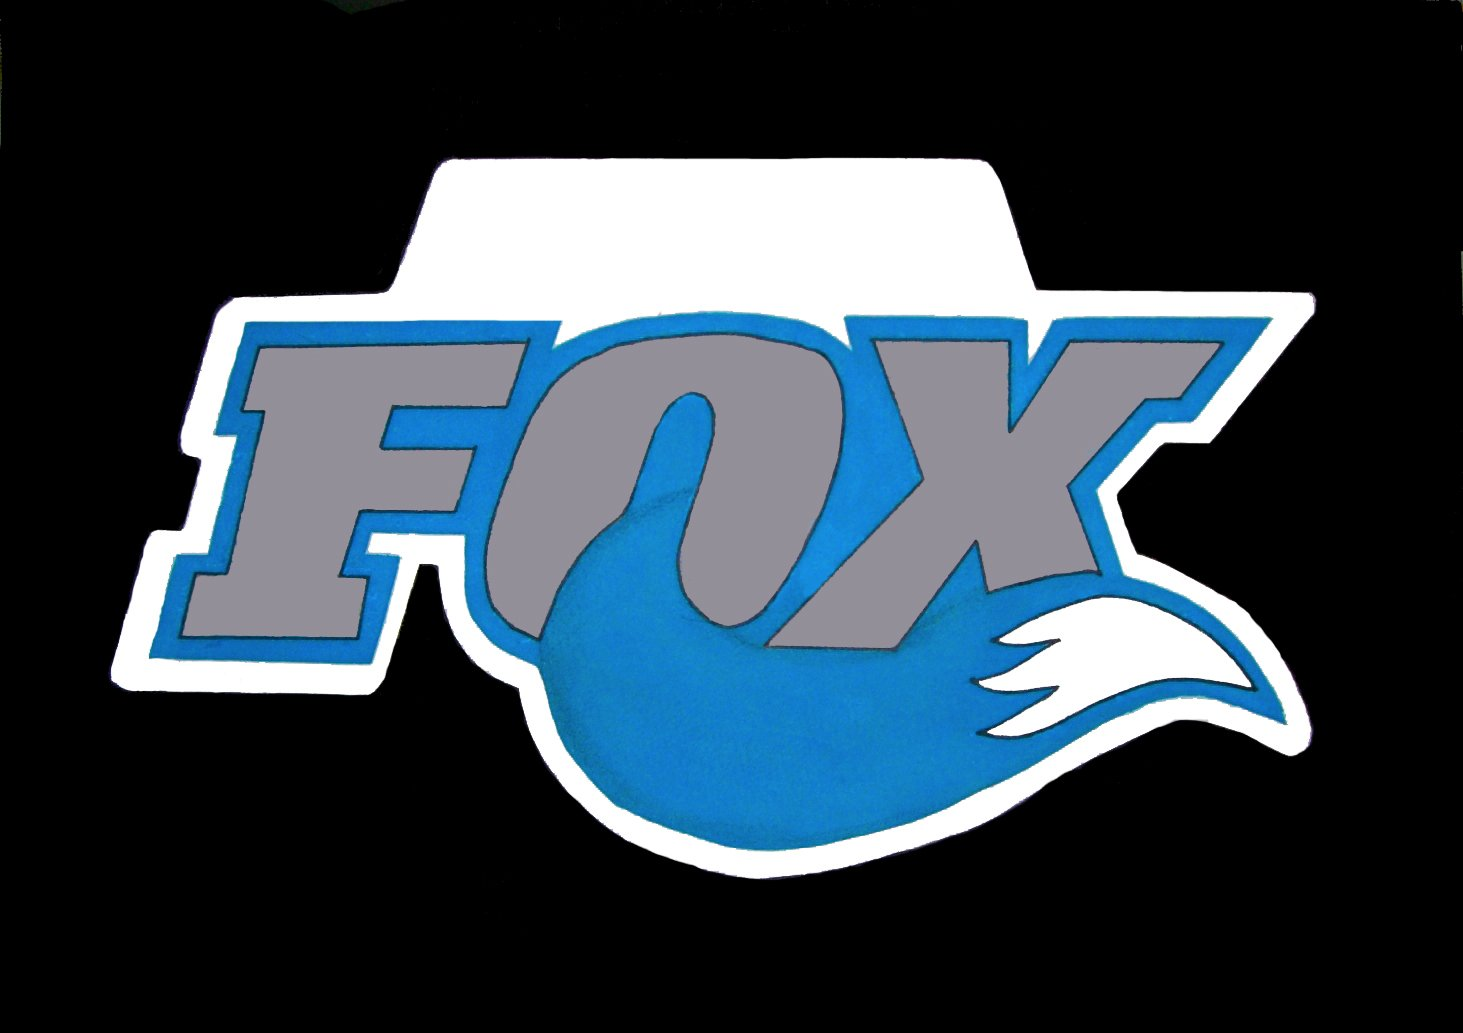 Download Fox Racing Logo wallpaper Wallpaper millioncom   Ecro 1463x1033